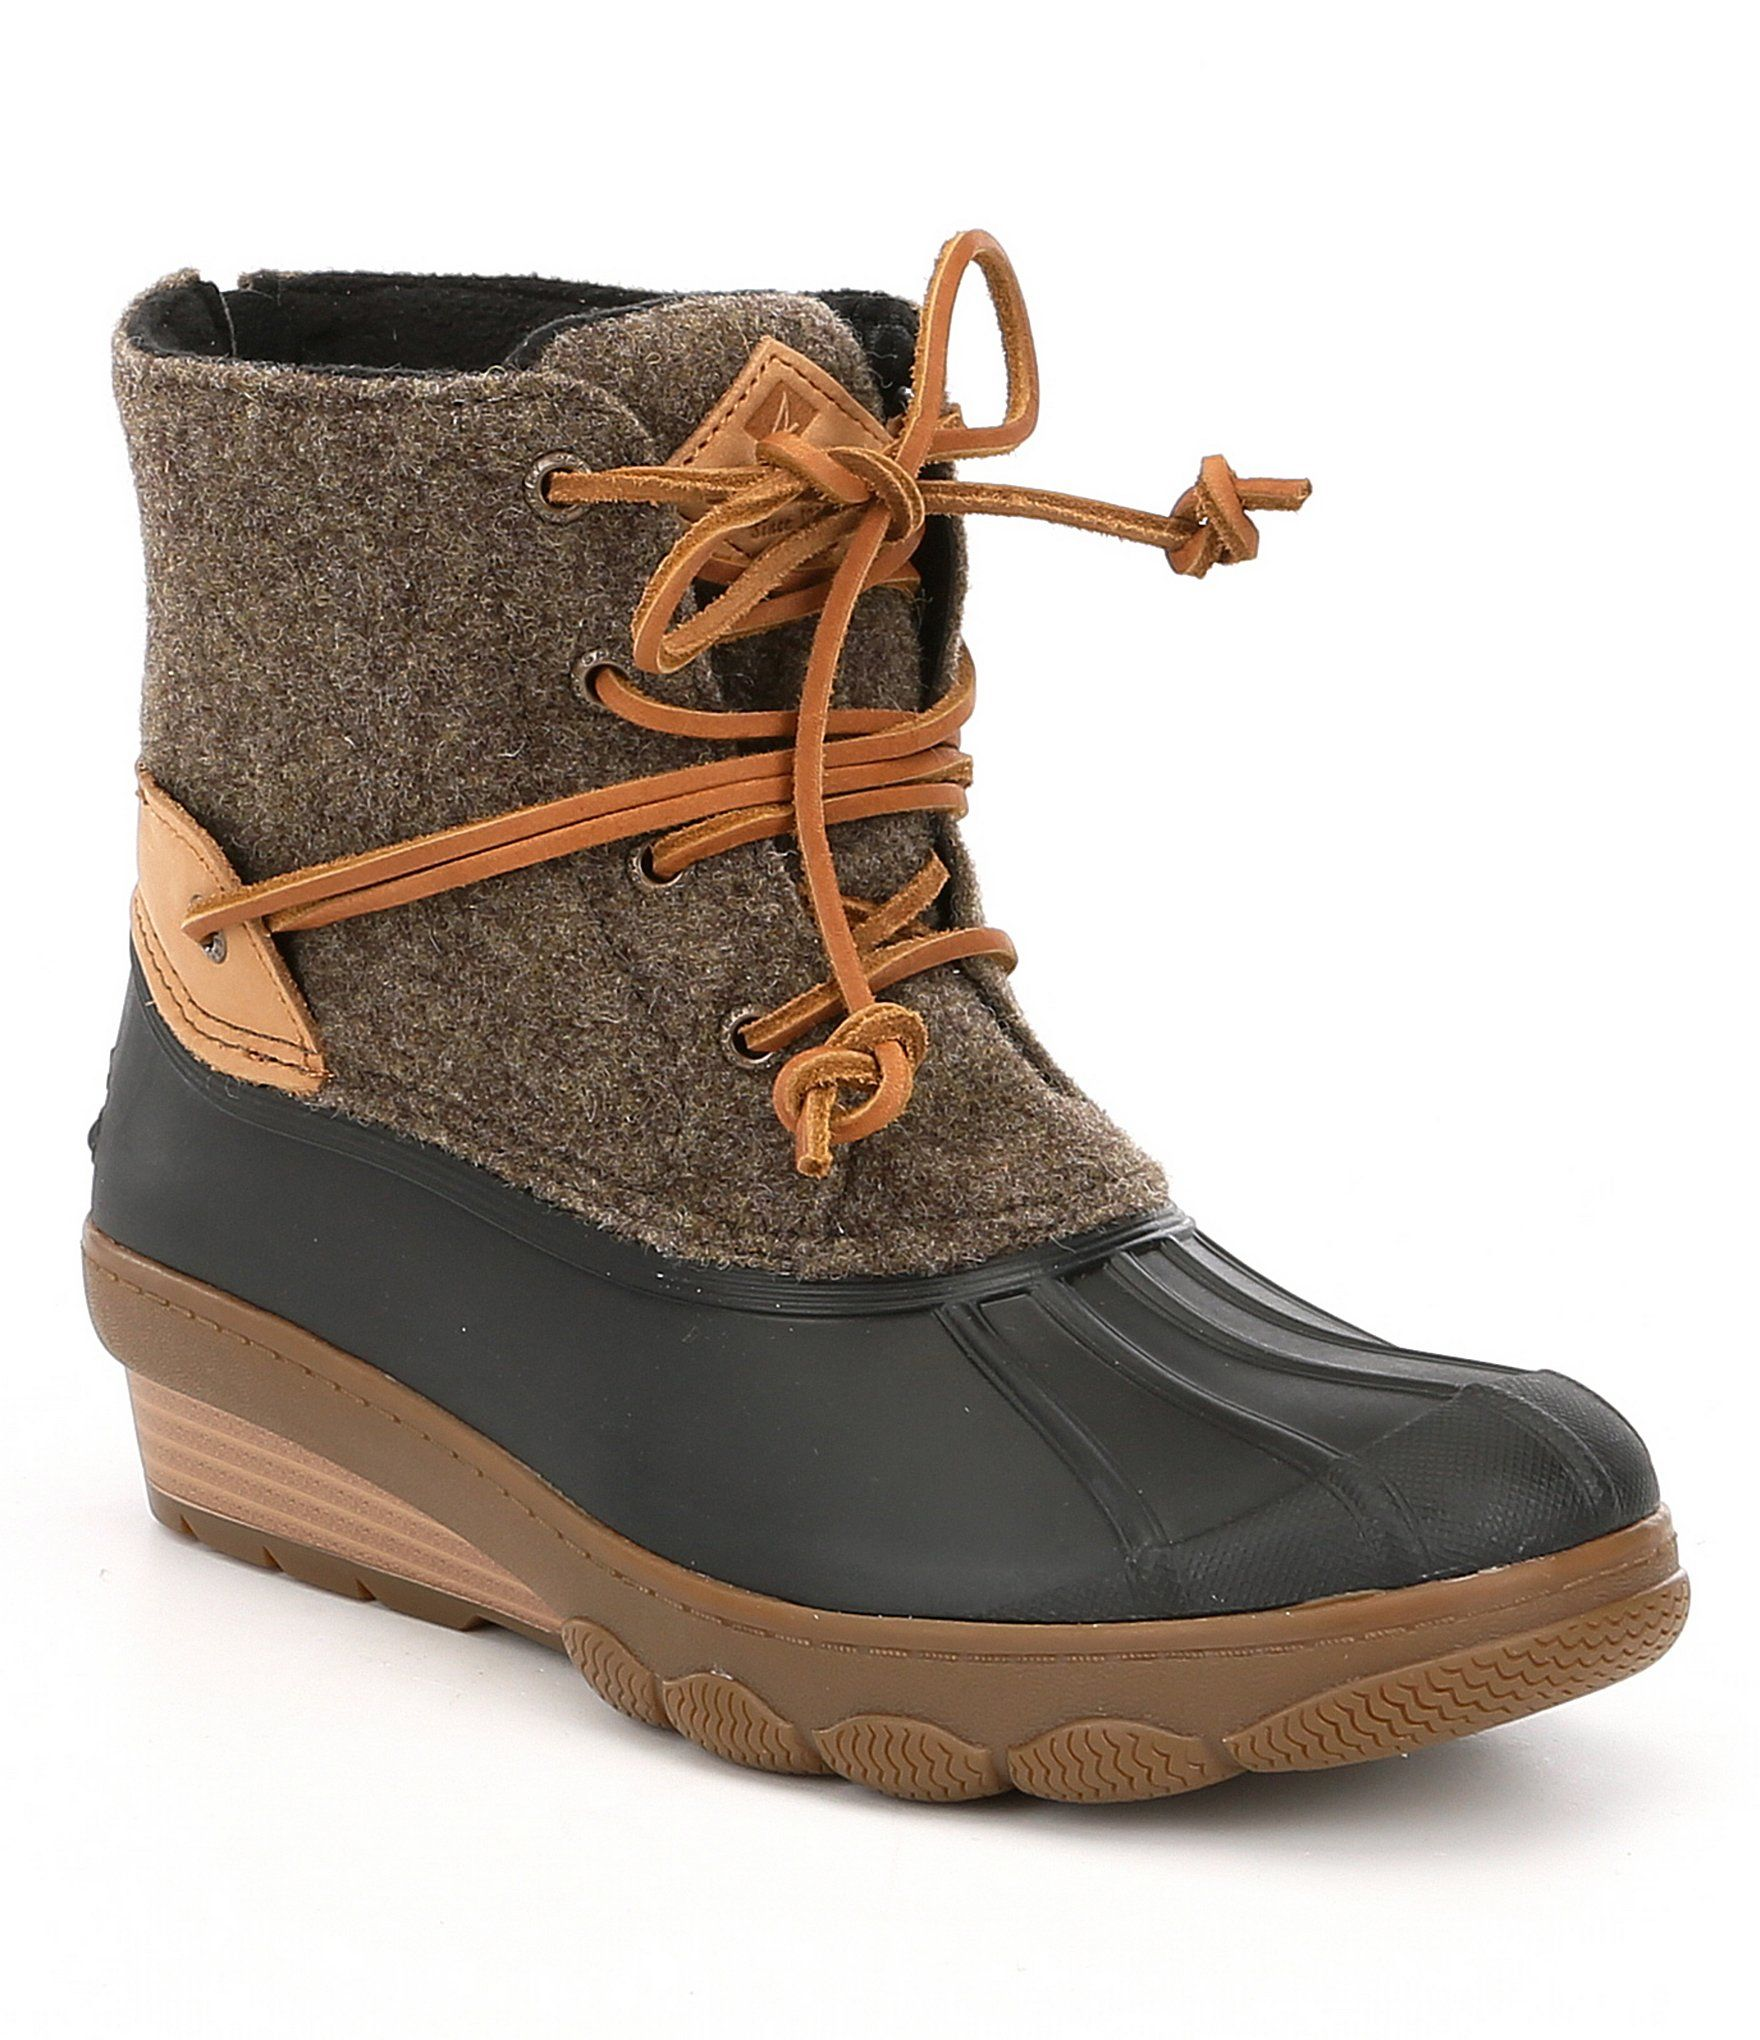 74f49293aefa Saltwater Quilted Waterproof Matte Lace Up ColdWeather Duck Boots ...